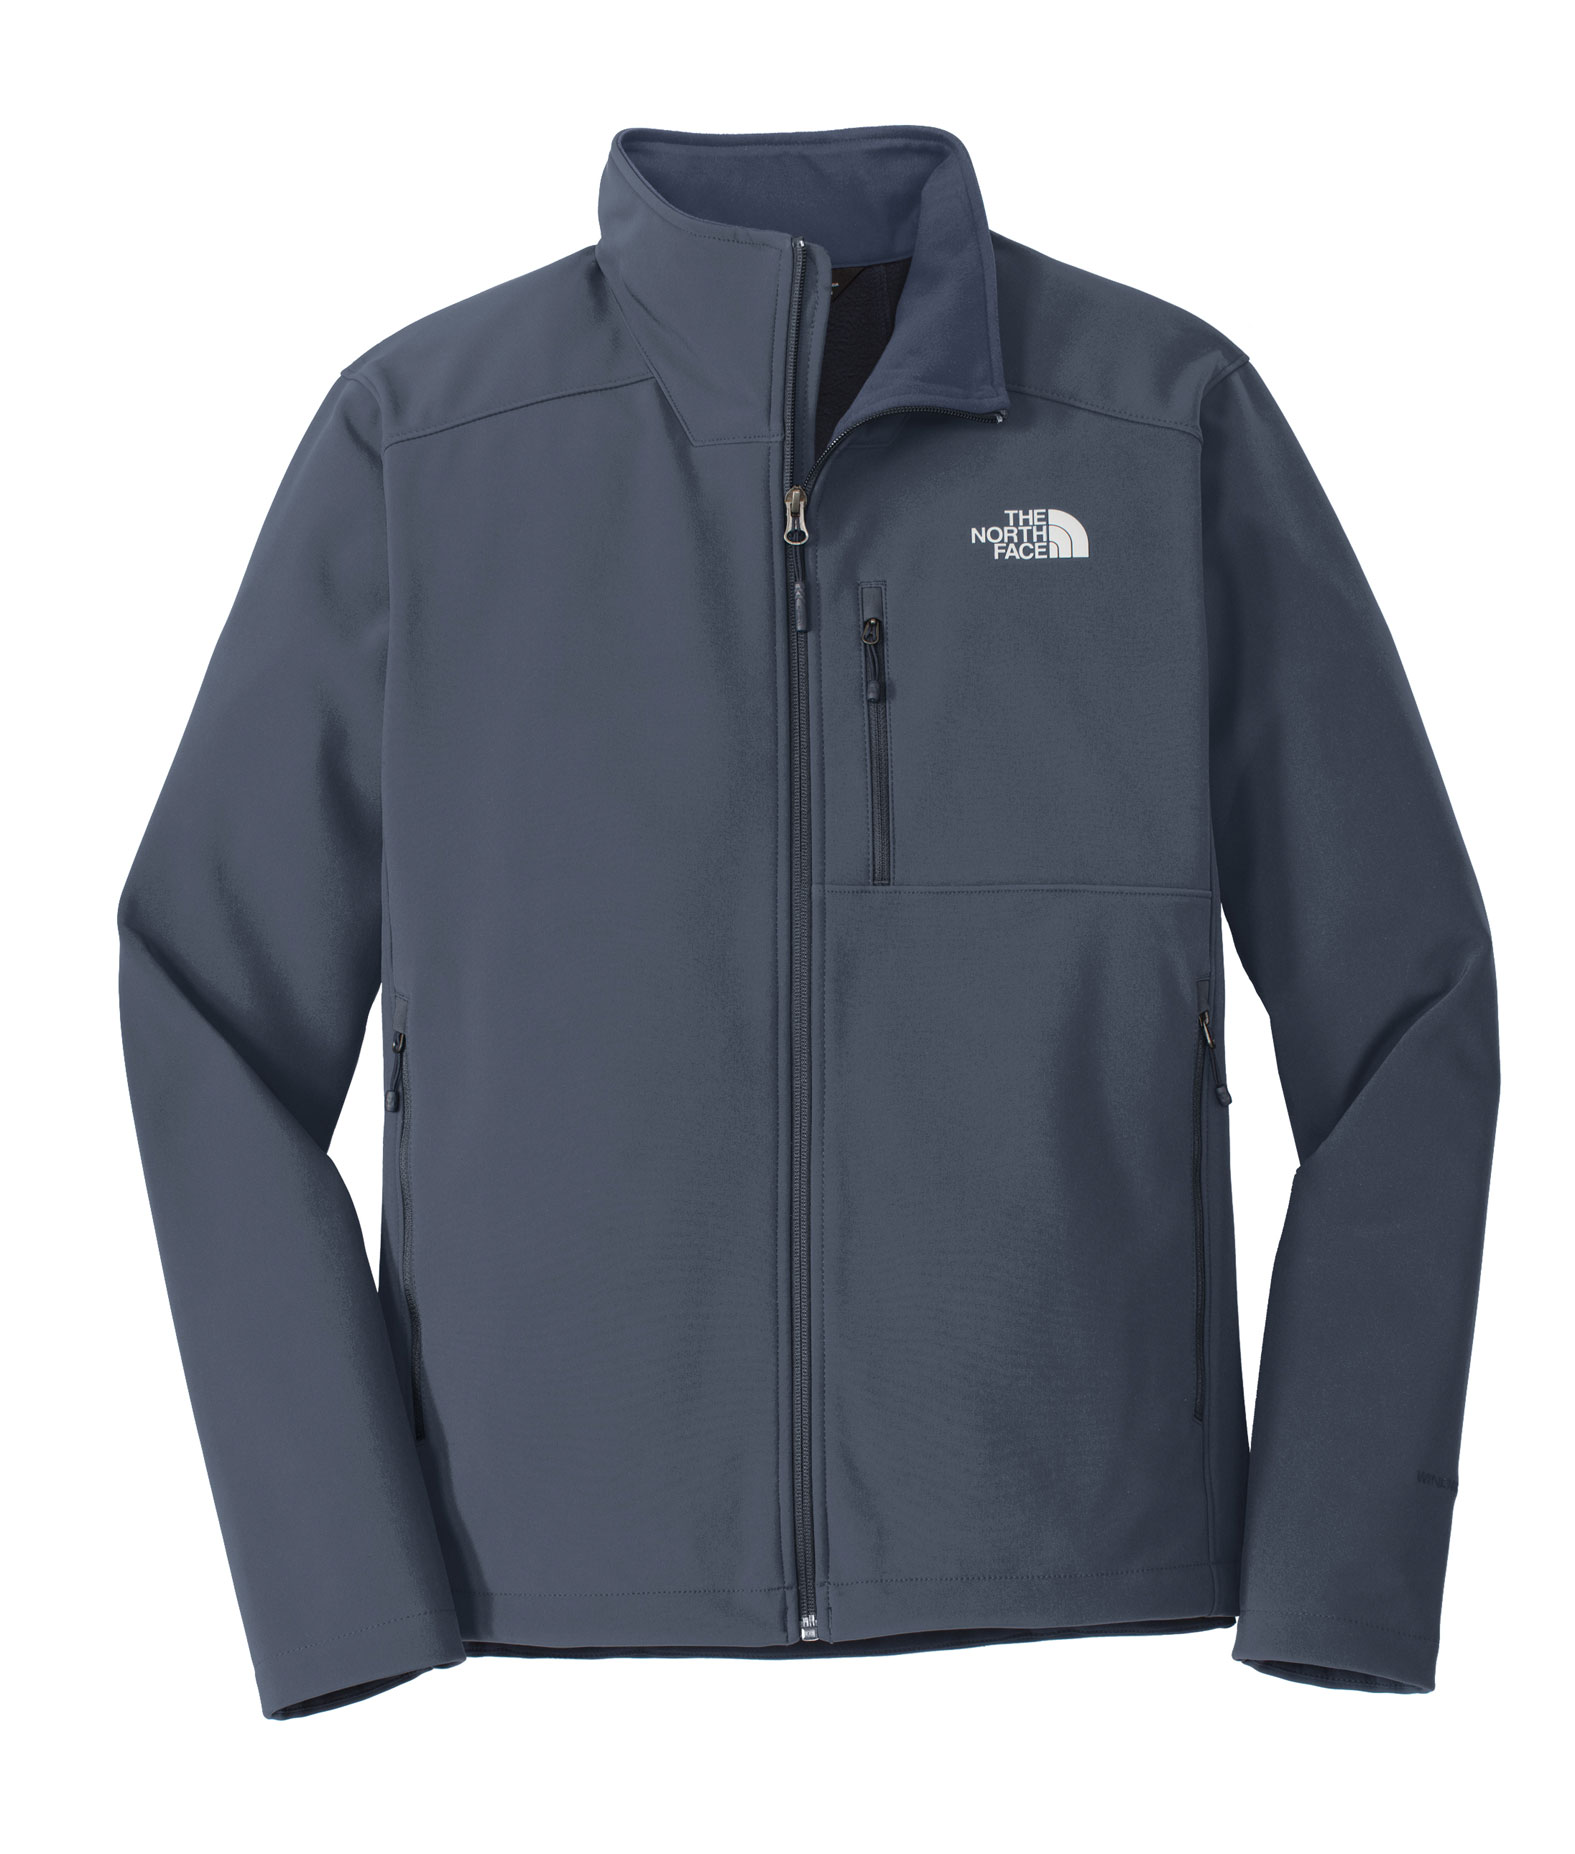 Mens Apex Barrier Soft Shell Jacket by The North Face®